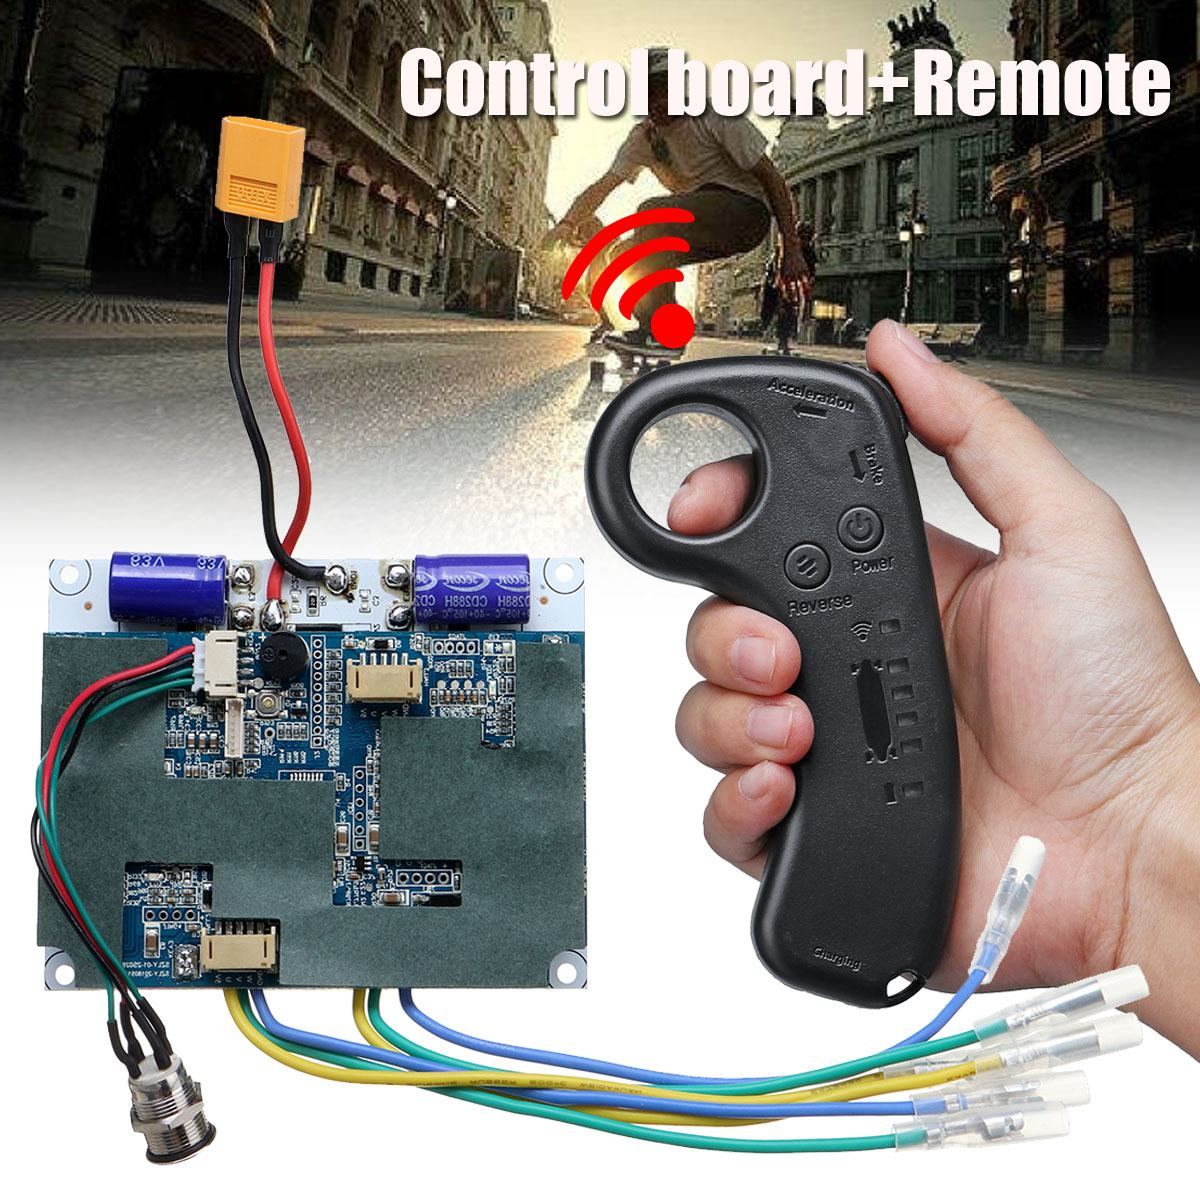 Electric SkateboardController Double Motor Drive System Longboard Remote Controller for Scooter Skateboard  Accessories